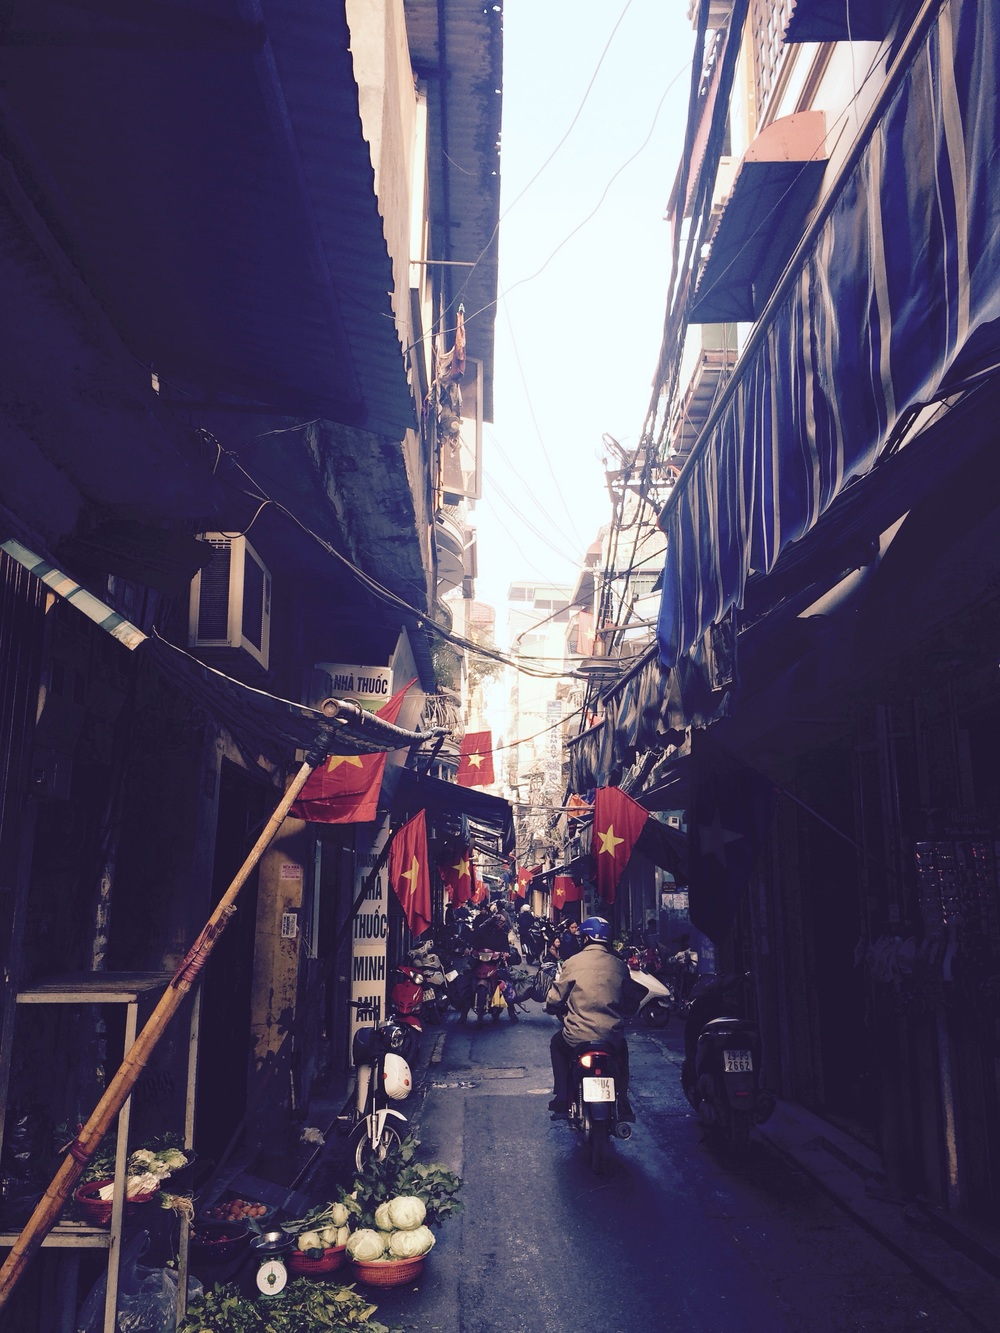 A typical street in Hanoi, the capital of Vietnam